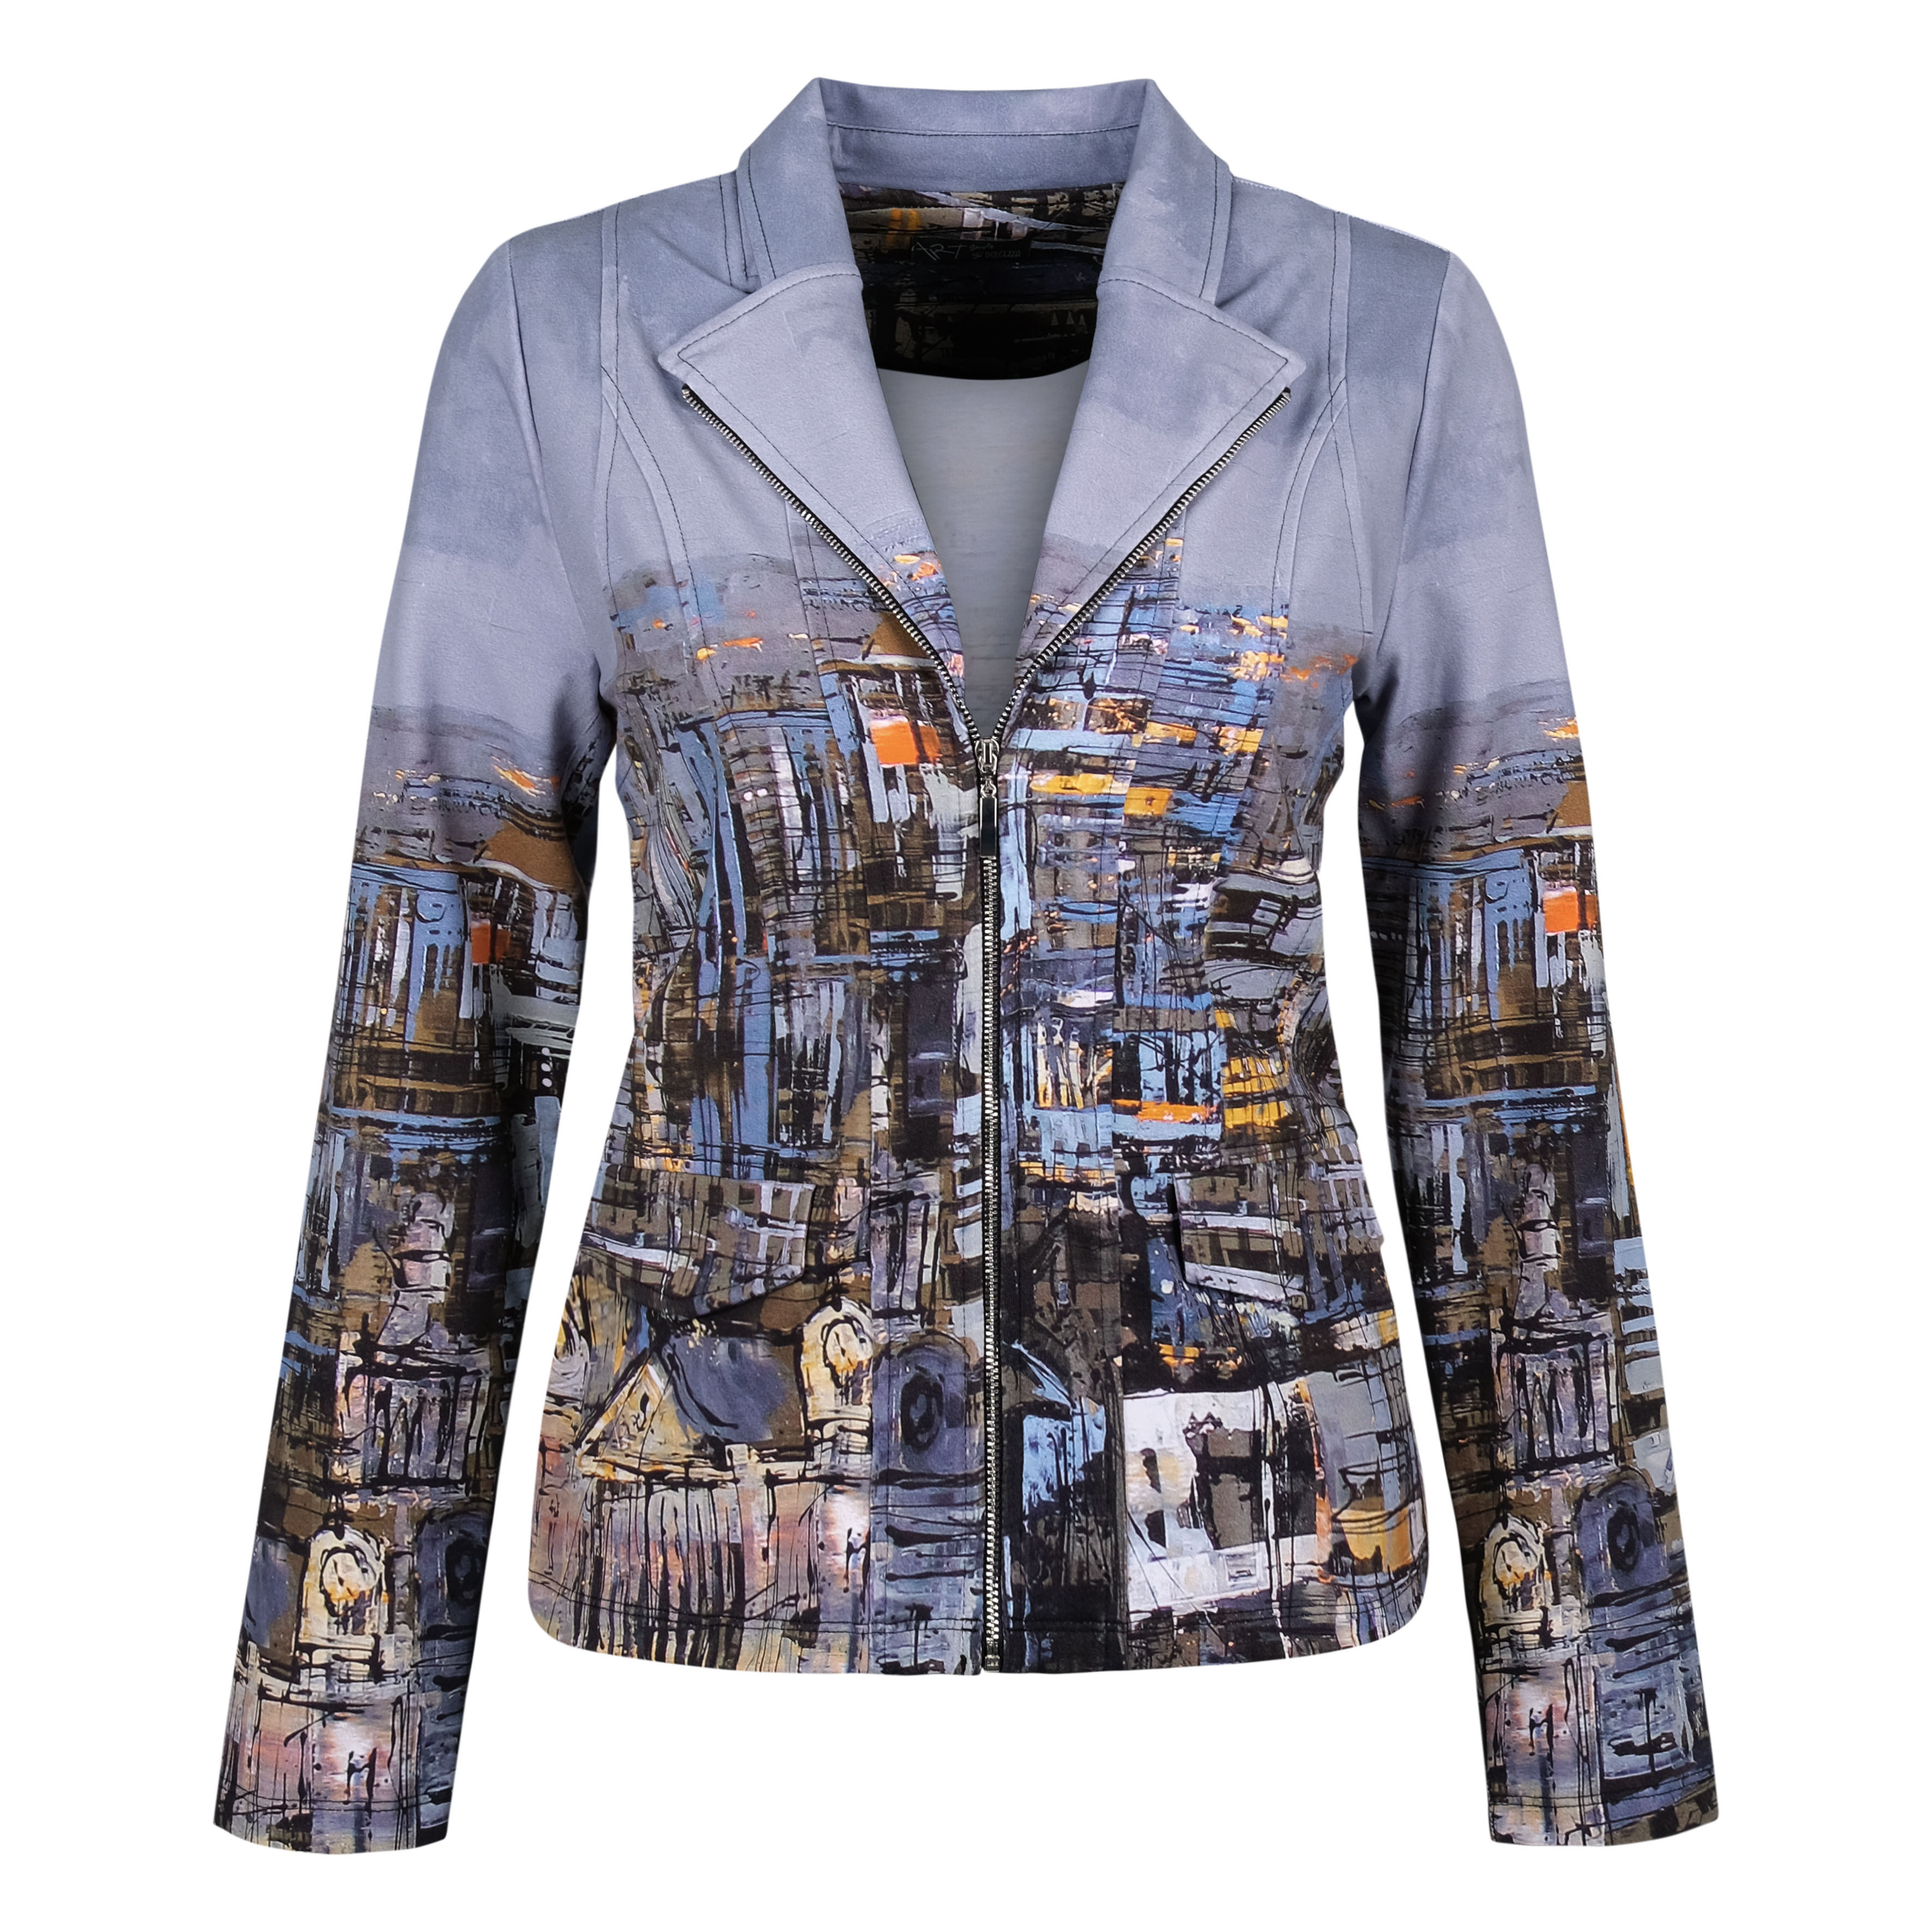 Simply Art Dolcezza: St. Paul's Sundown Zip Jacket (1 Available at Special price!) Dolcezza_SimplyArt_70665